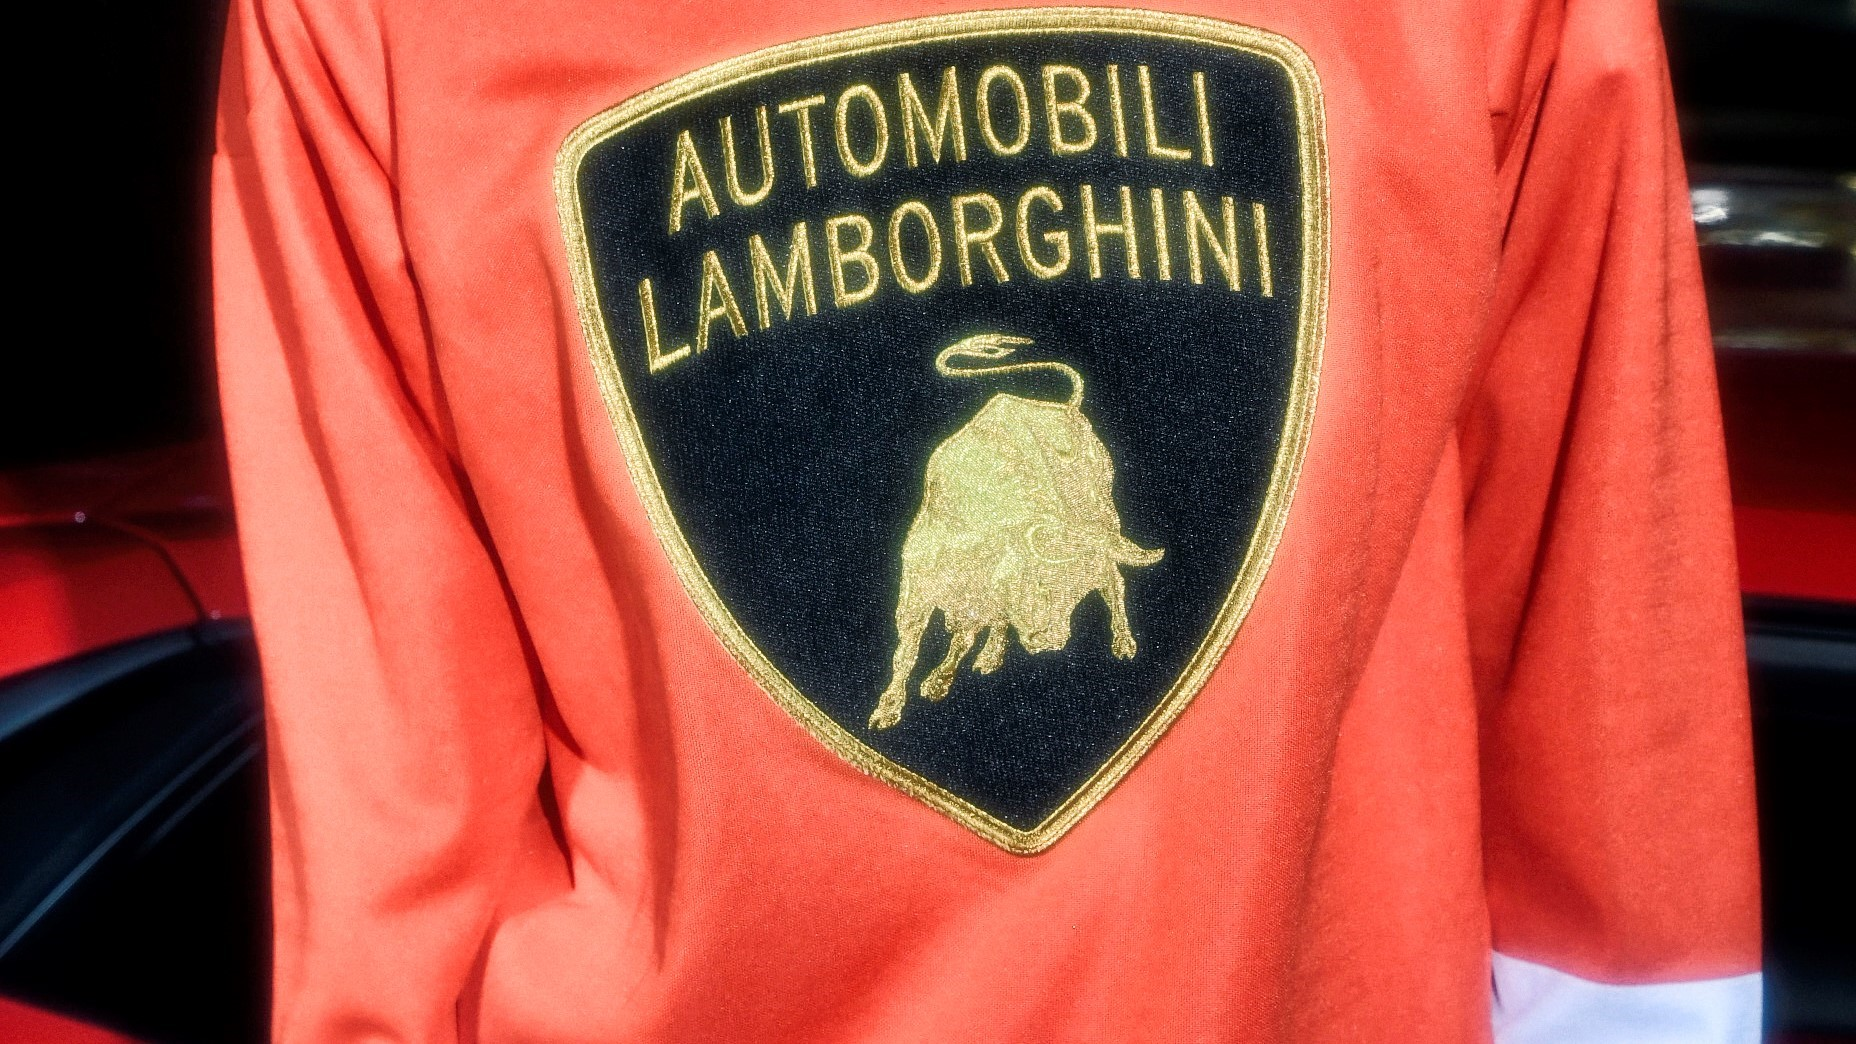 Automobili Lamborghini and Supreme come together on a new collection for Spring-Summer 2020 - Image 6